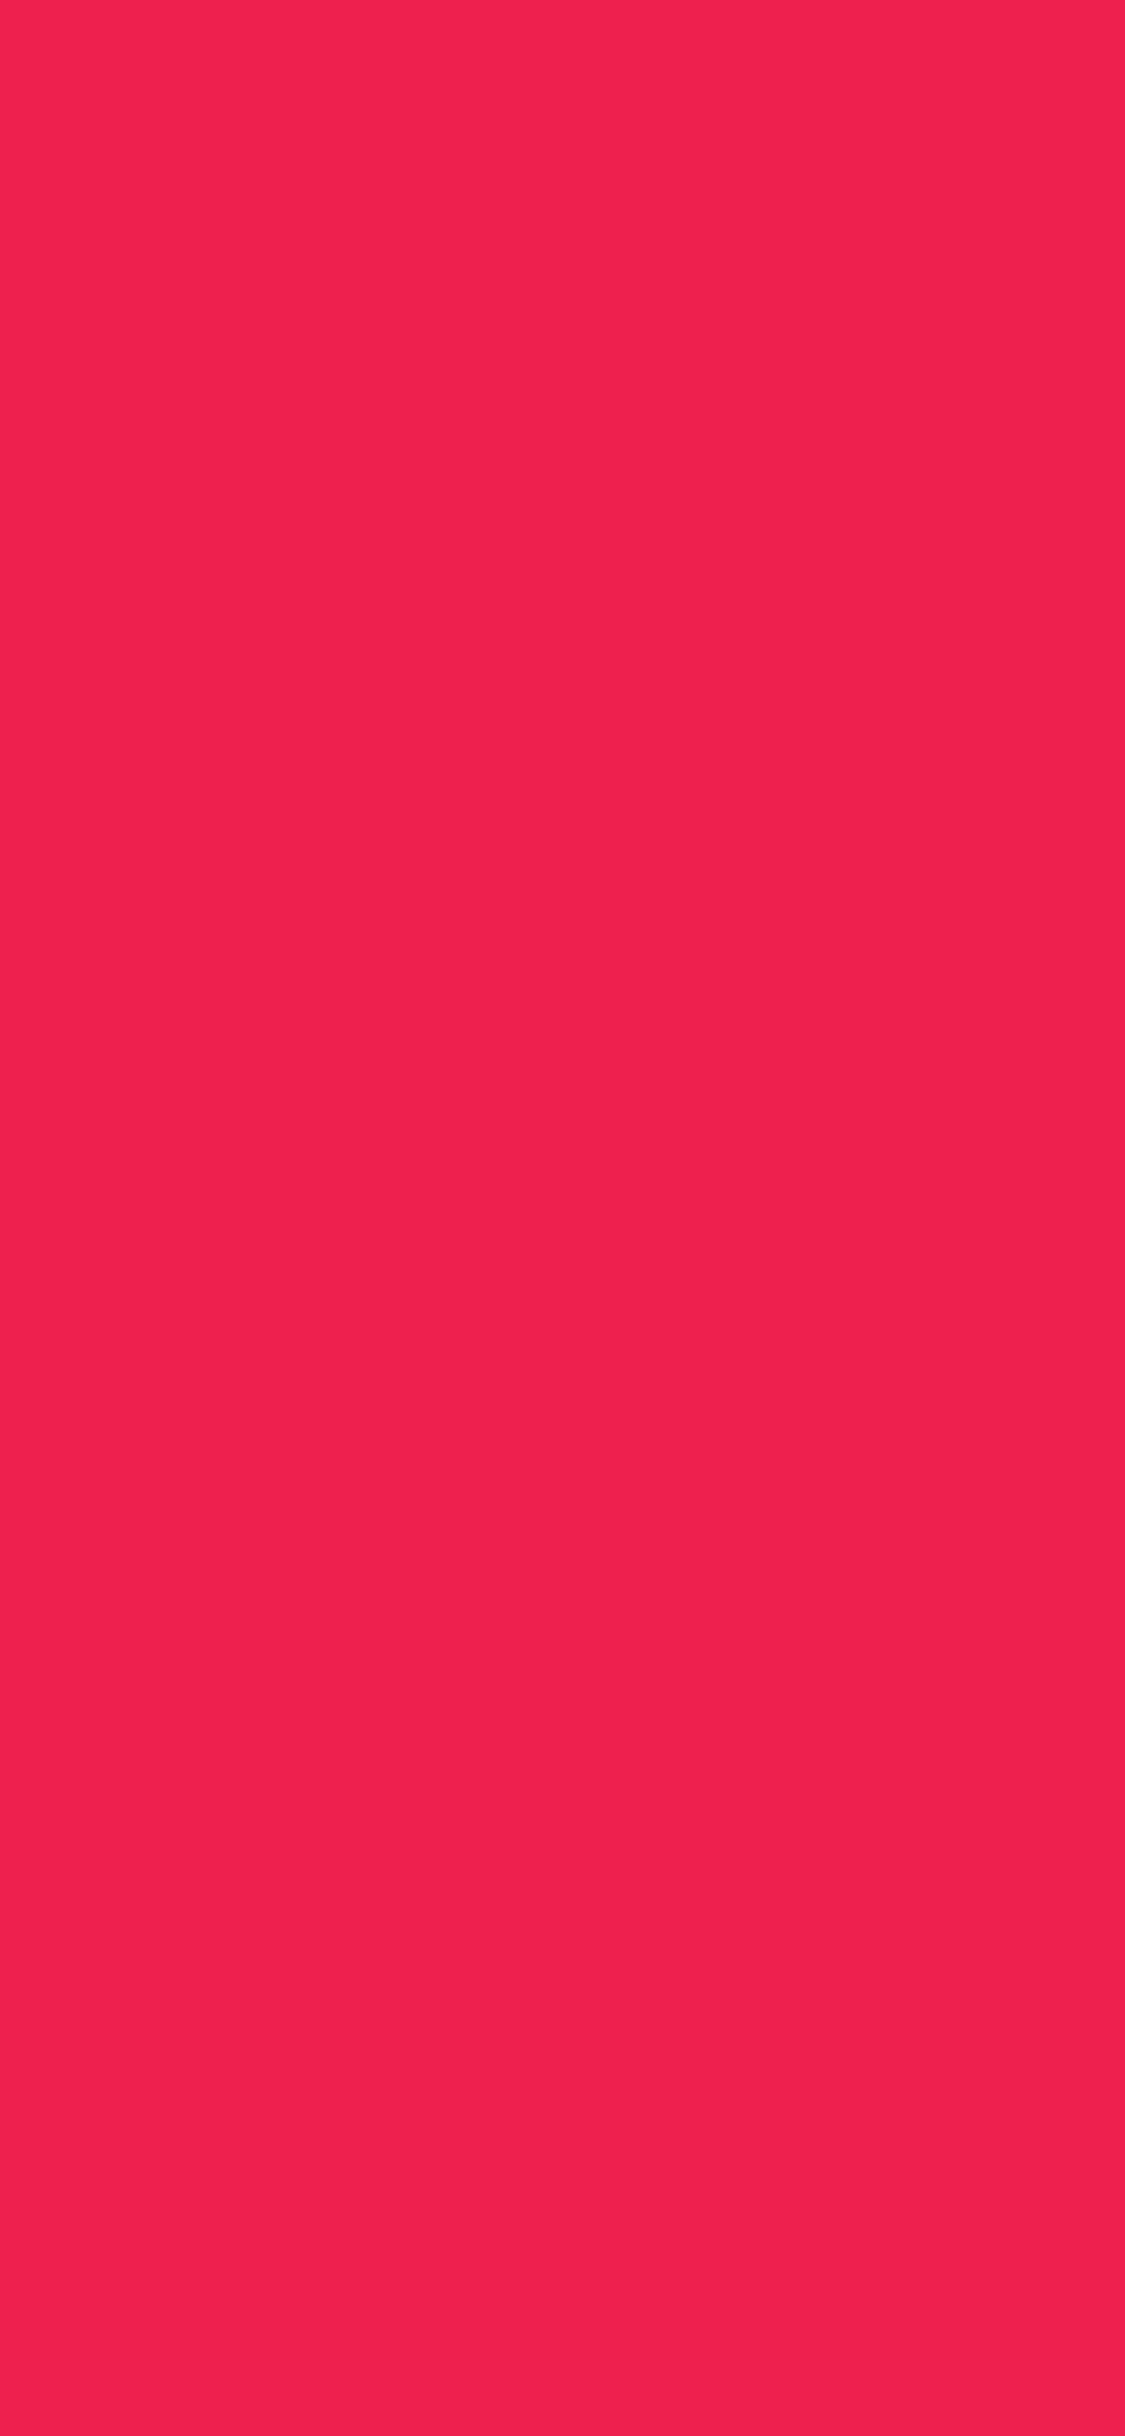 1125x2436 Red Crayola Solid Color Background